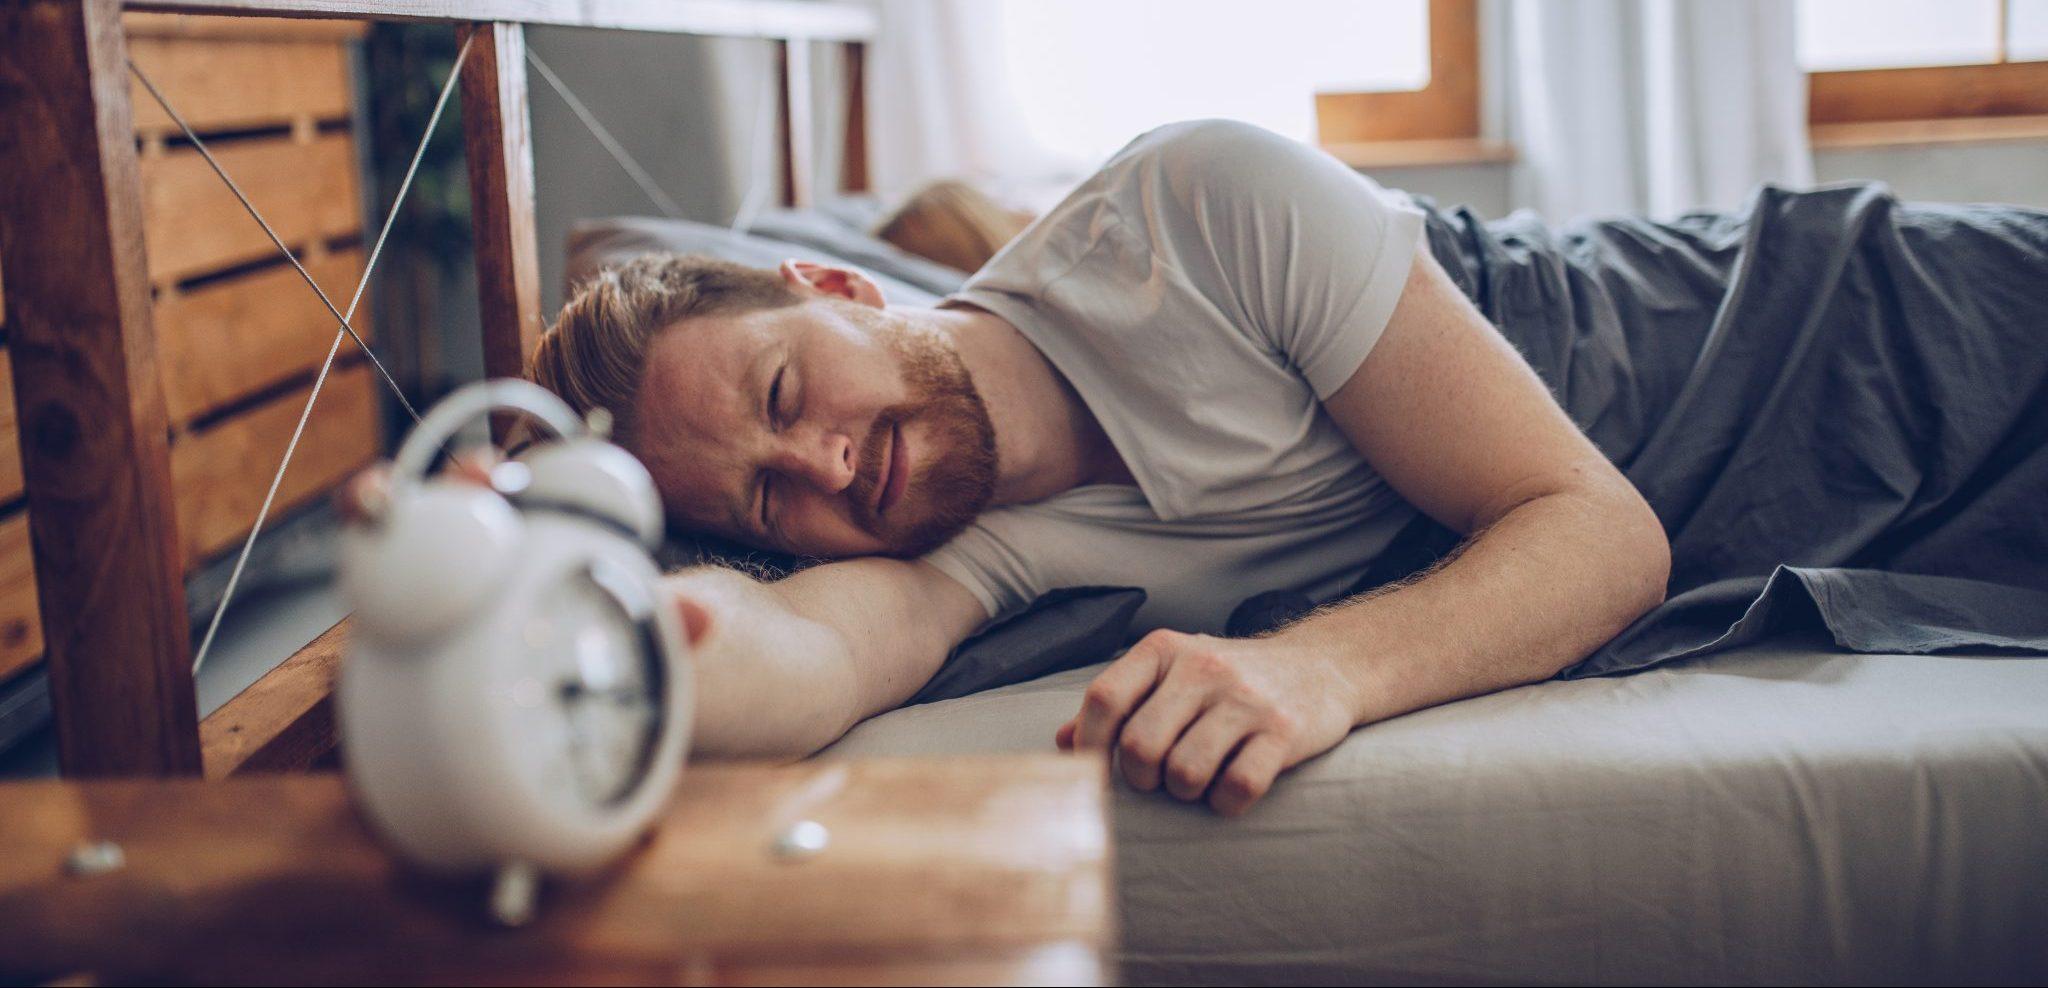 Can Running Help You Get Rid of That Hangover?